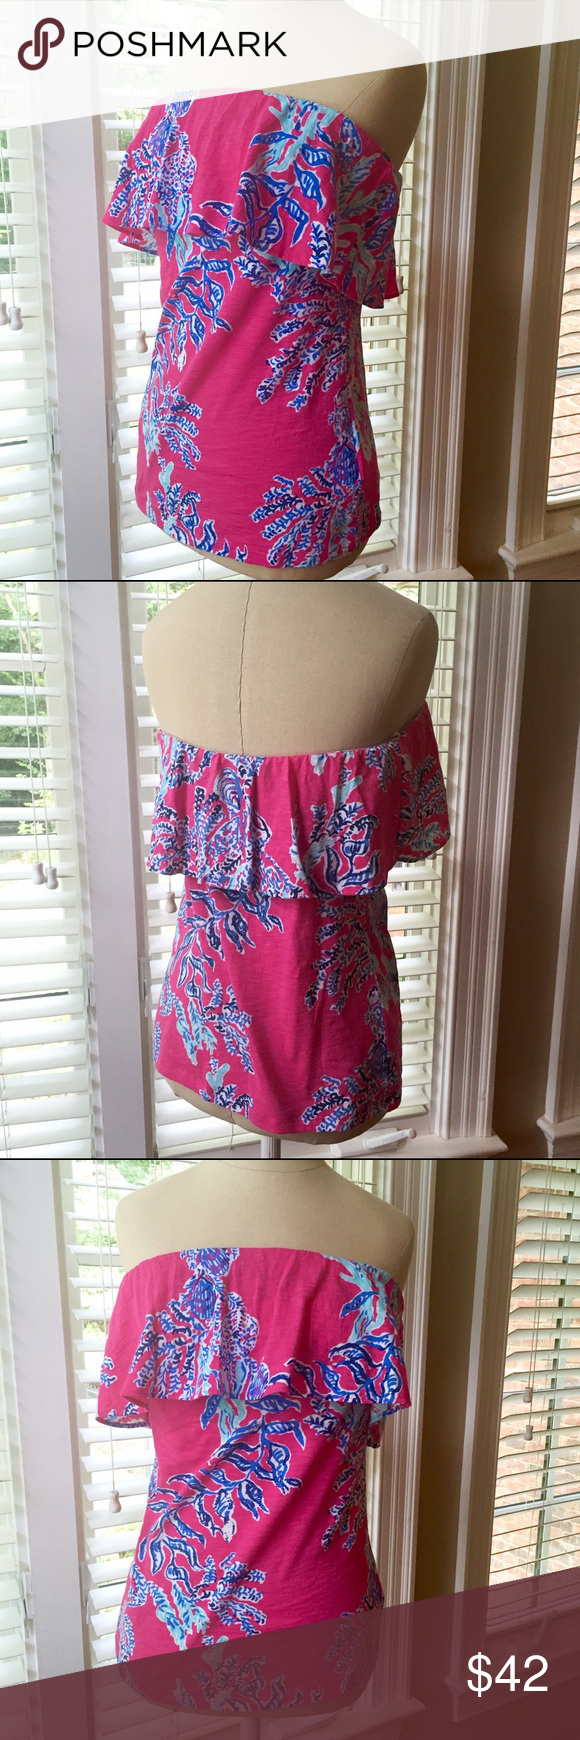 Lilly Pulitzer Ruffled Tube Top This super cute Lilly Pulitzer top is in perfect condition since I've never worn it! It's perfect for the summer, but would also look great with longer pants and a jacket :) These cute tops are no longer available at Lilly Pulitzer or online. Lilly Pulitzer Tops Blouses